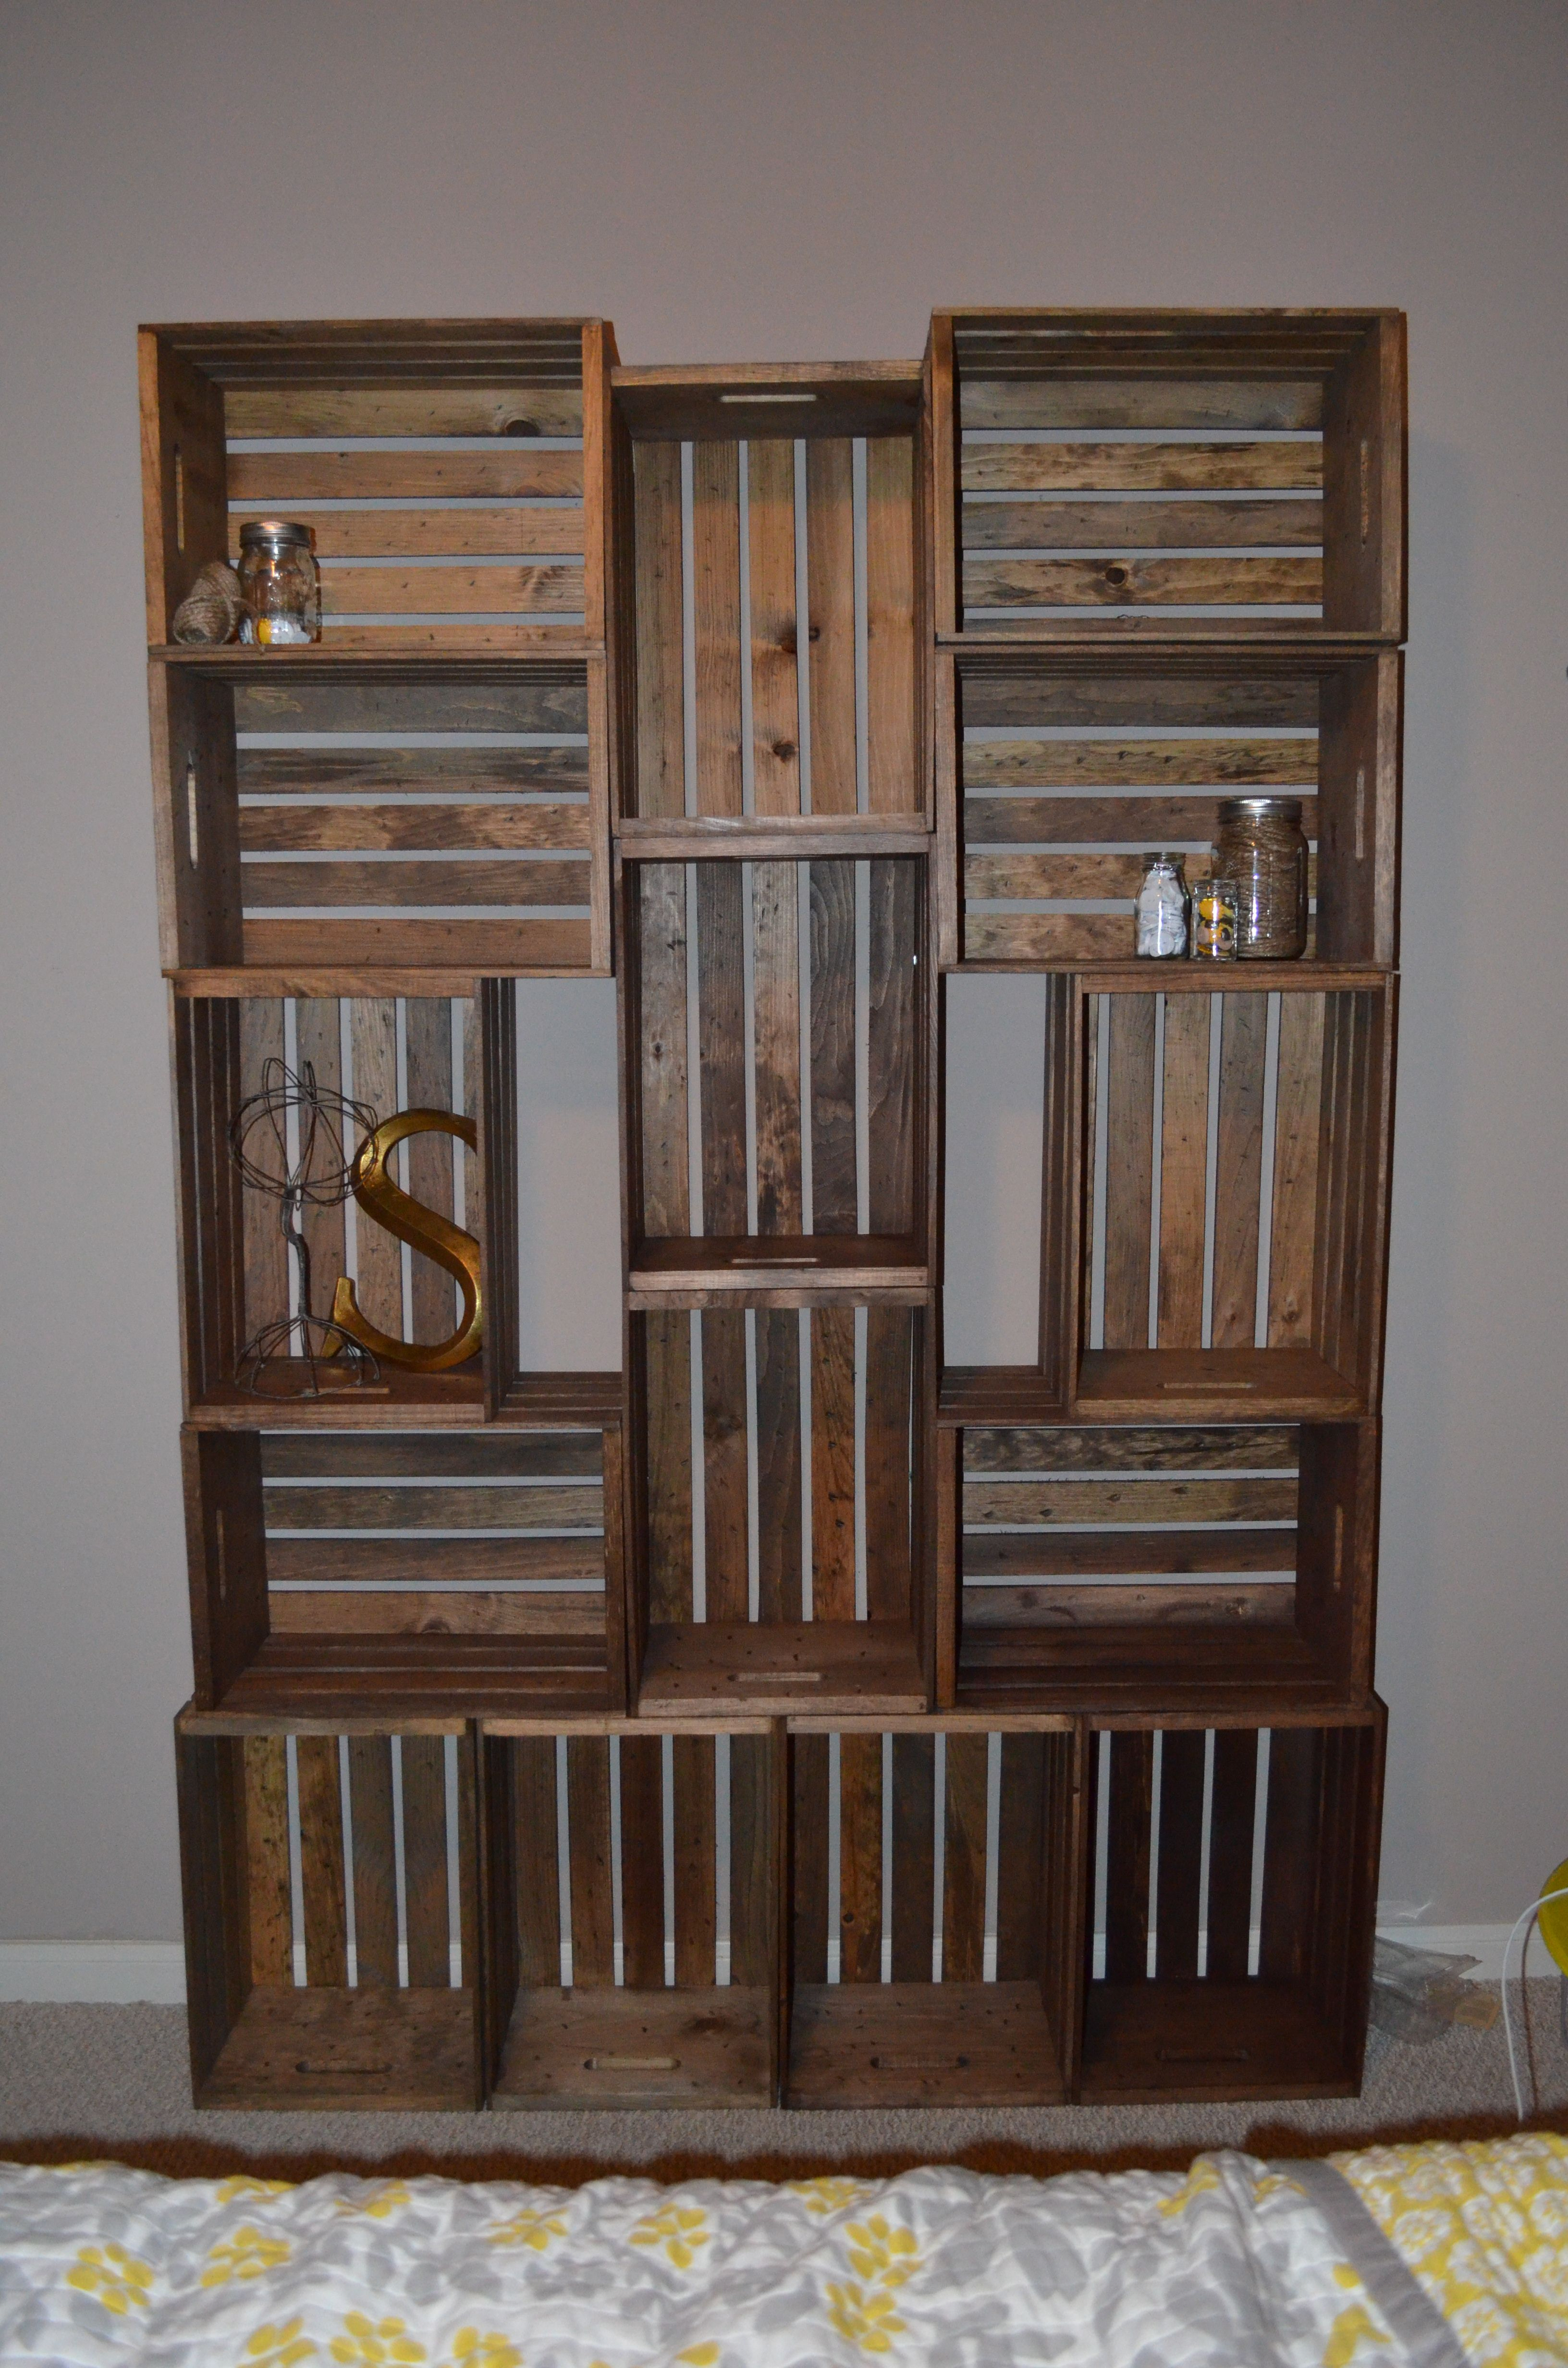 Bookcase i made from an idea i found on pinterest with